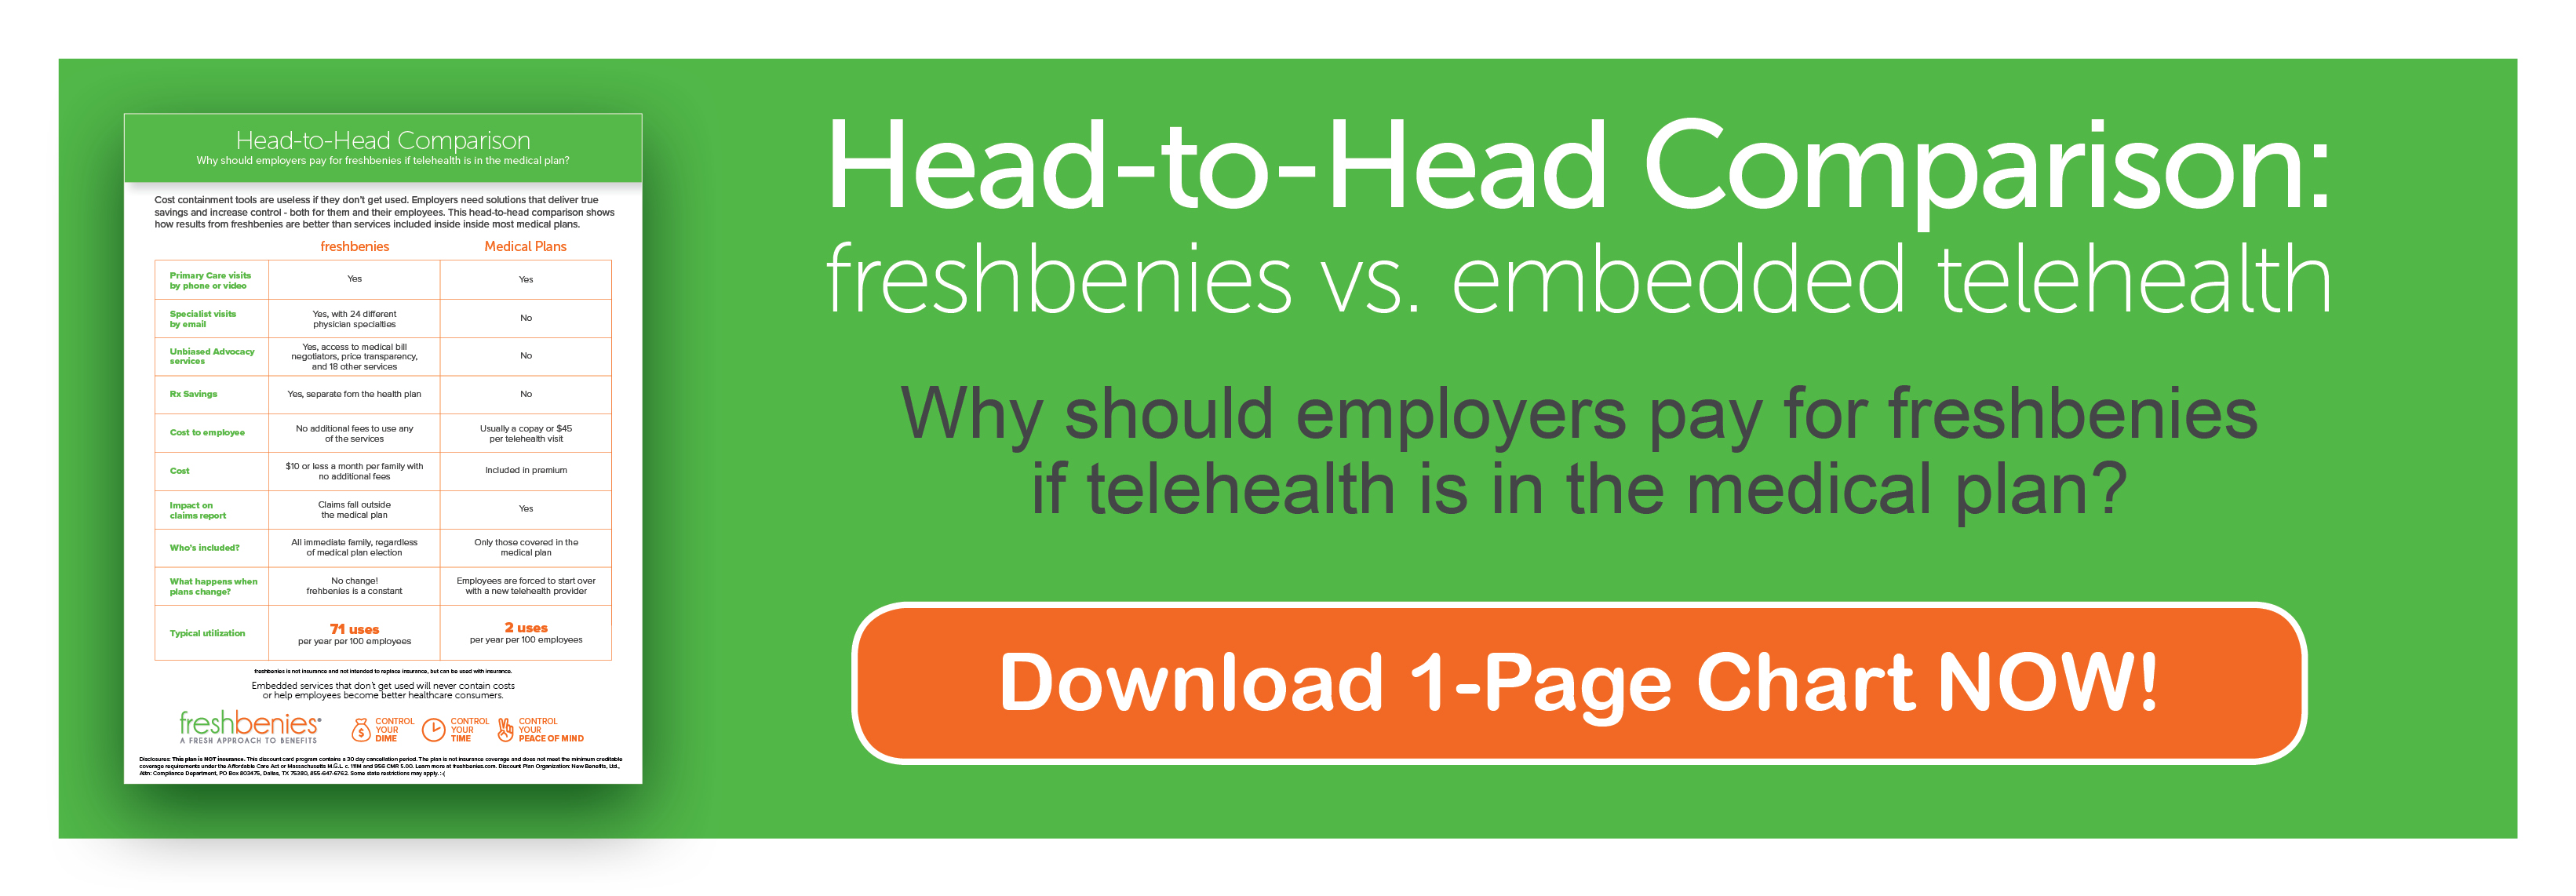 freshbenies vs. embedded telehealth